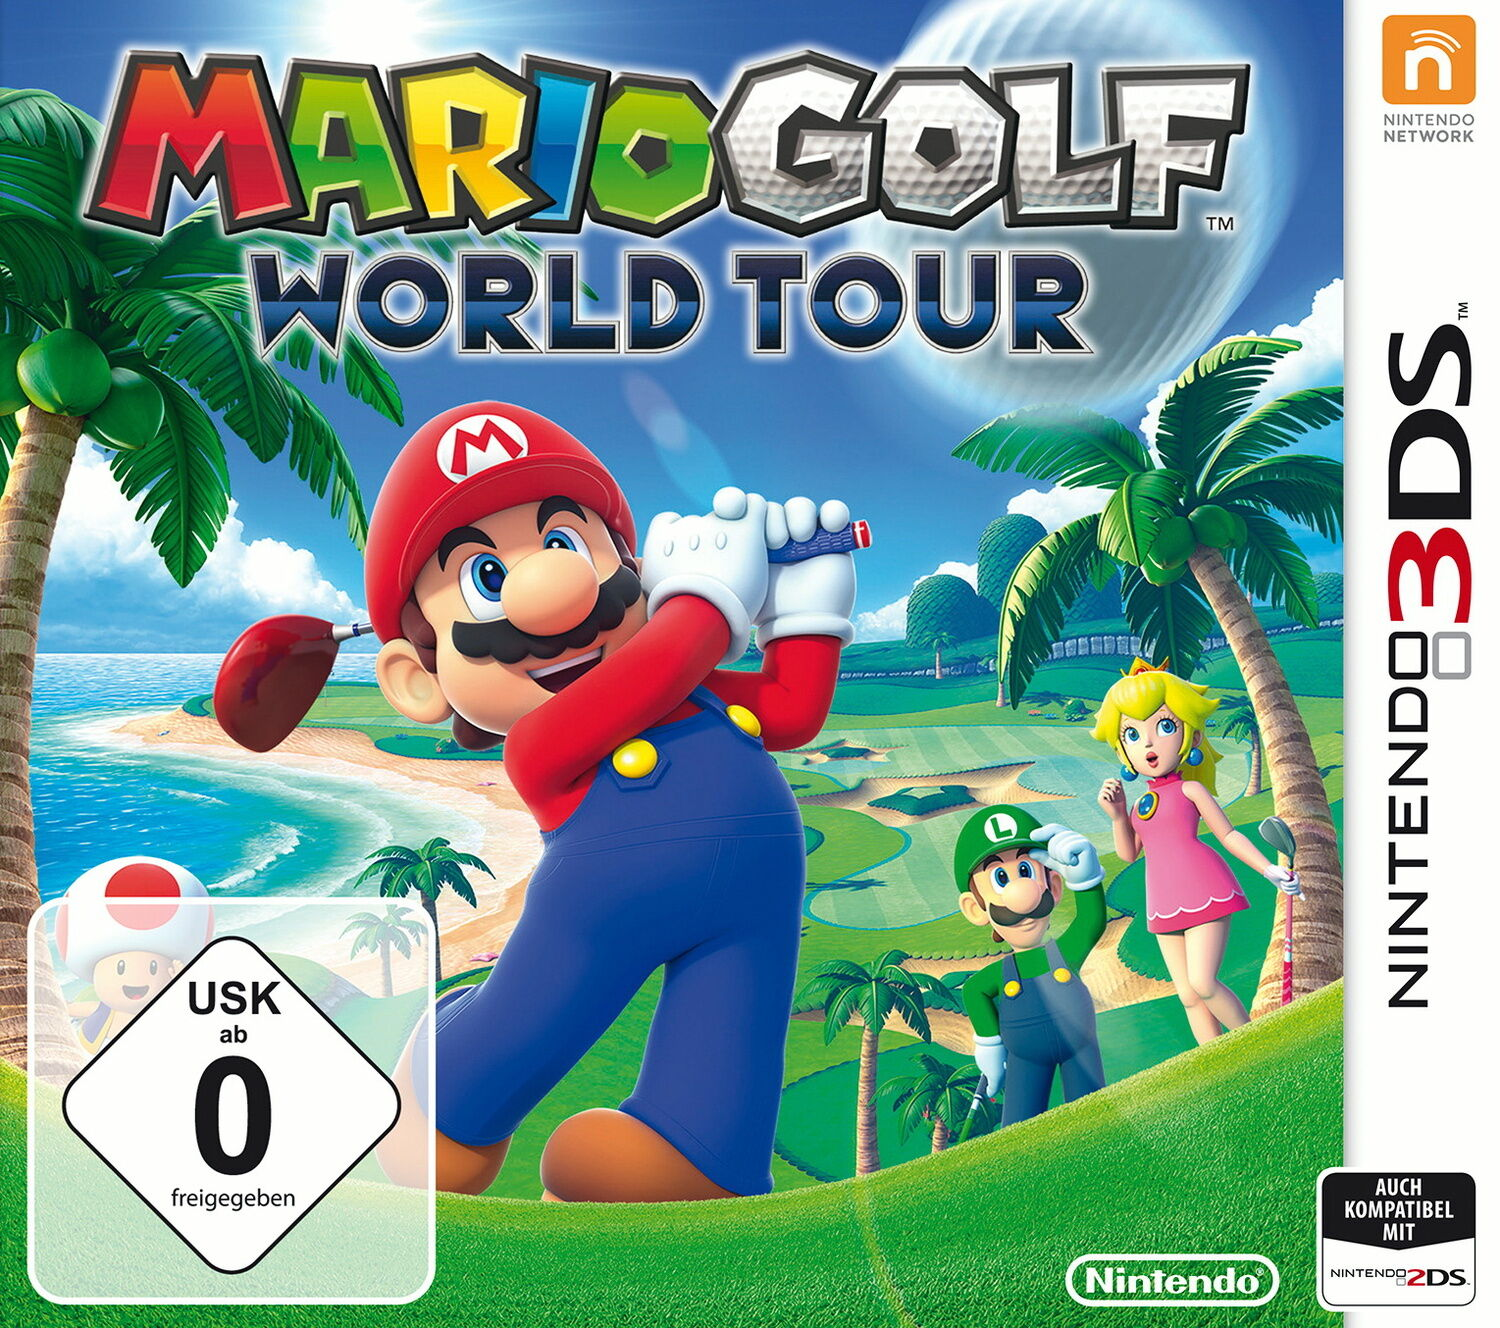 Mario Golf World Tour Nintendo 3ds Neu Ovp Eur 2499